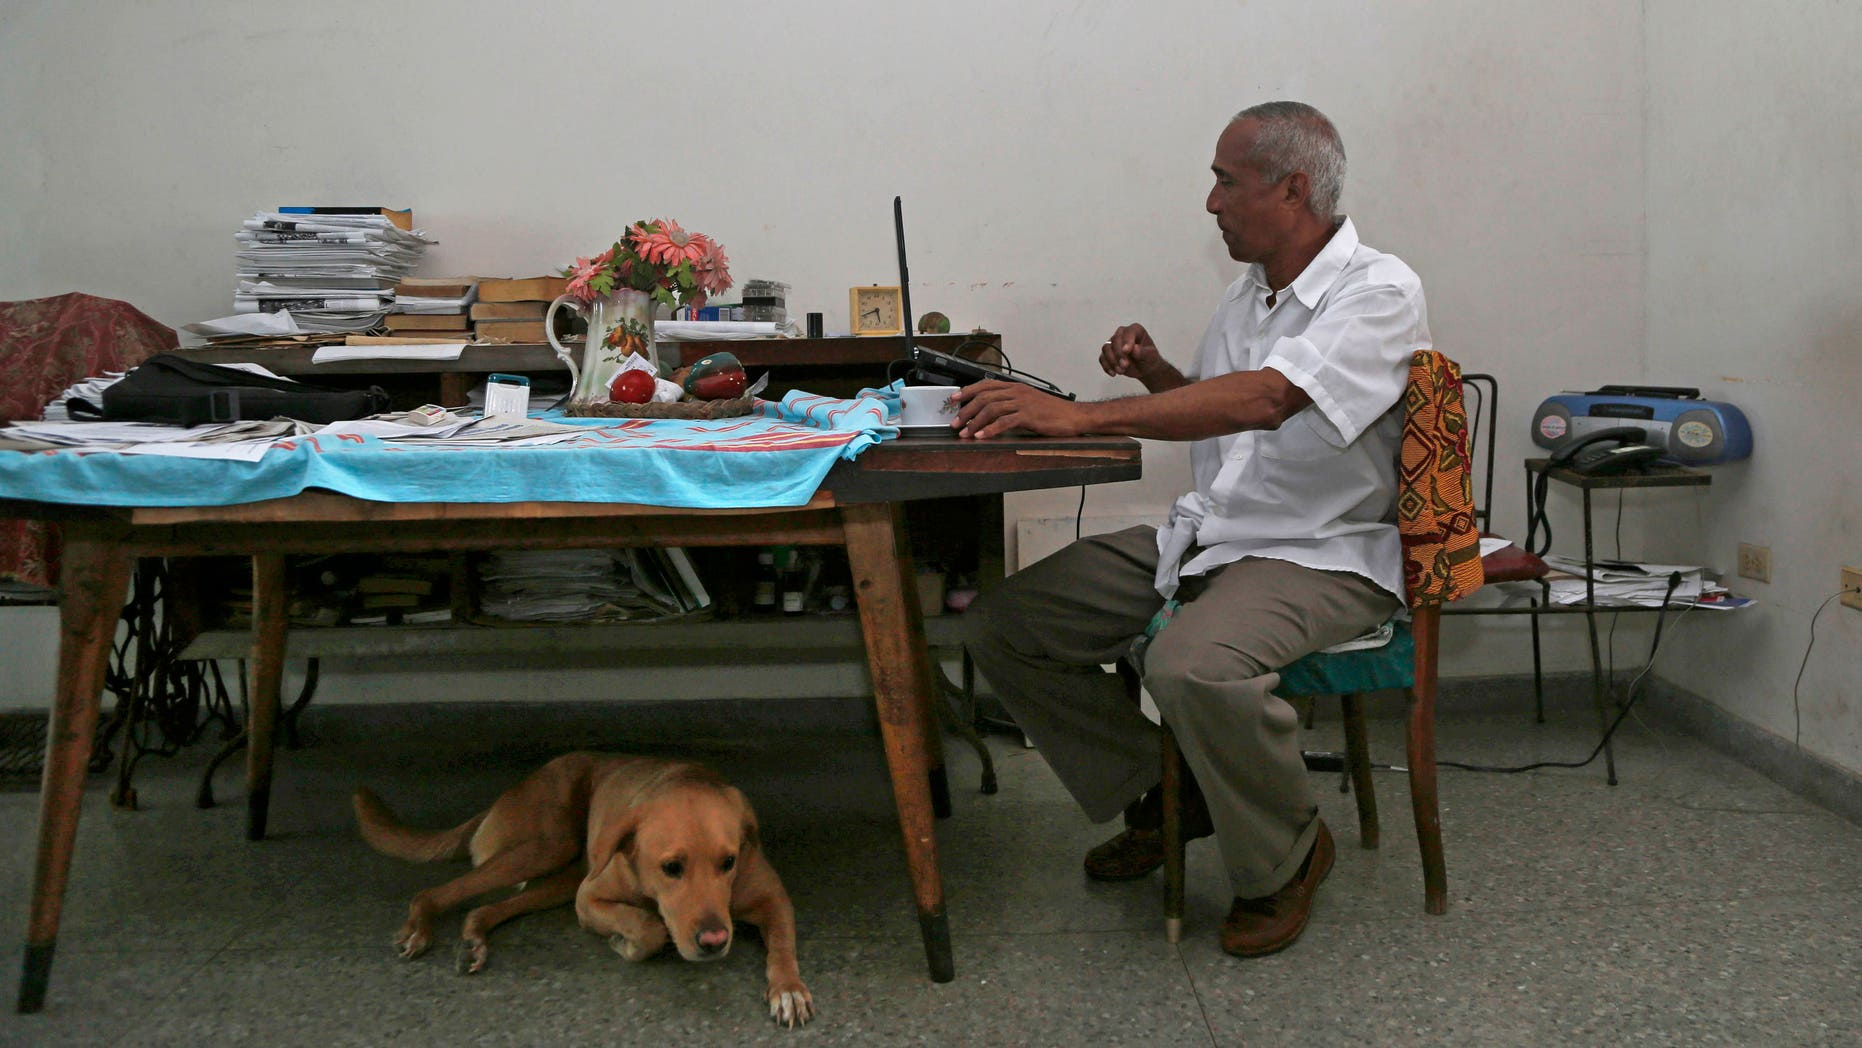 In this Thursday, April 16, 2015 photo, Cuban dissident Hildebrando Chaviano works at his laptop inside his home in Havana, Cuba. Chaviano, a government lawyer turned independent journalist, is one of at least two Cuban dissidents who made it past a first round of voting to become candidates in Sunday's local elections. (AP Photo/Desmond Boylan)